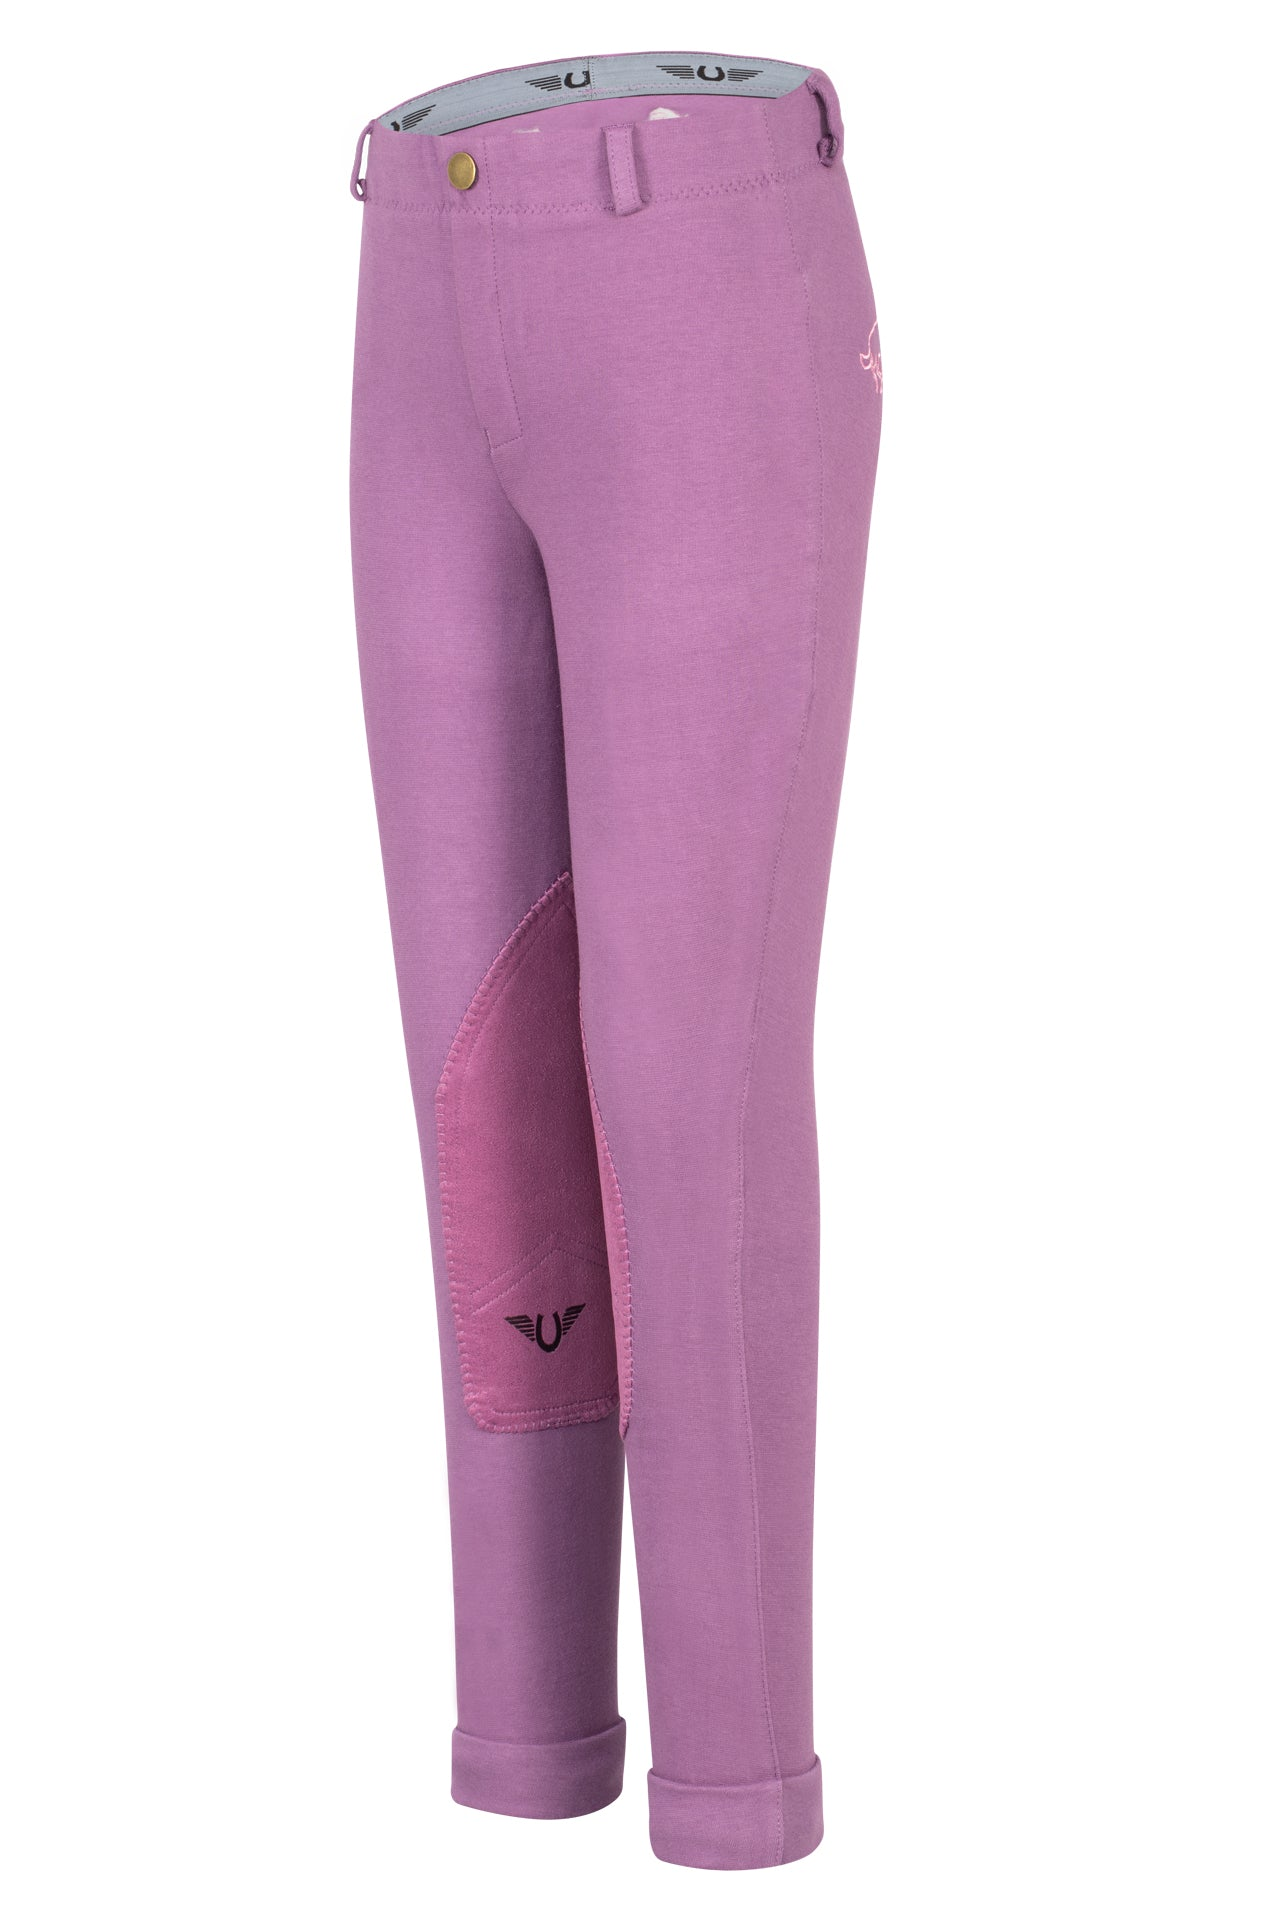 Children's Cotton Embroidered Pull-On Jodhpurs - TuffRider - Breeches.com